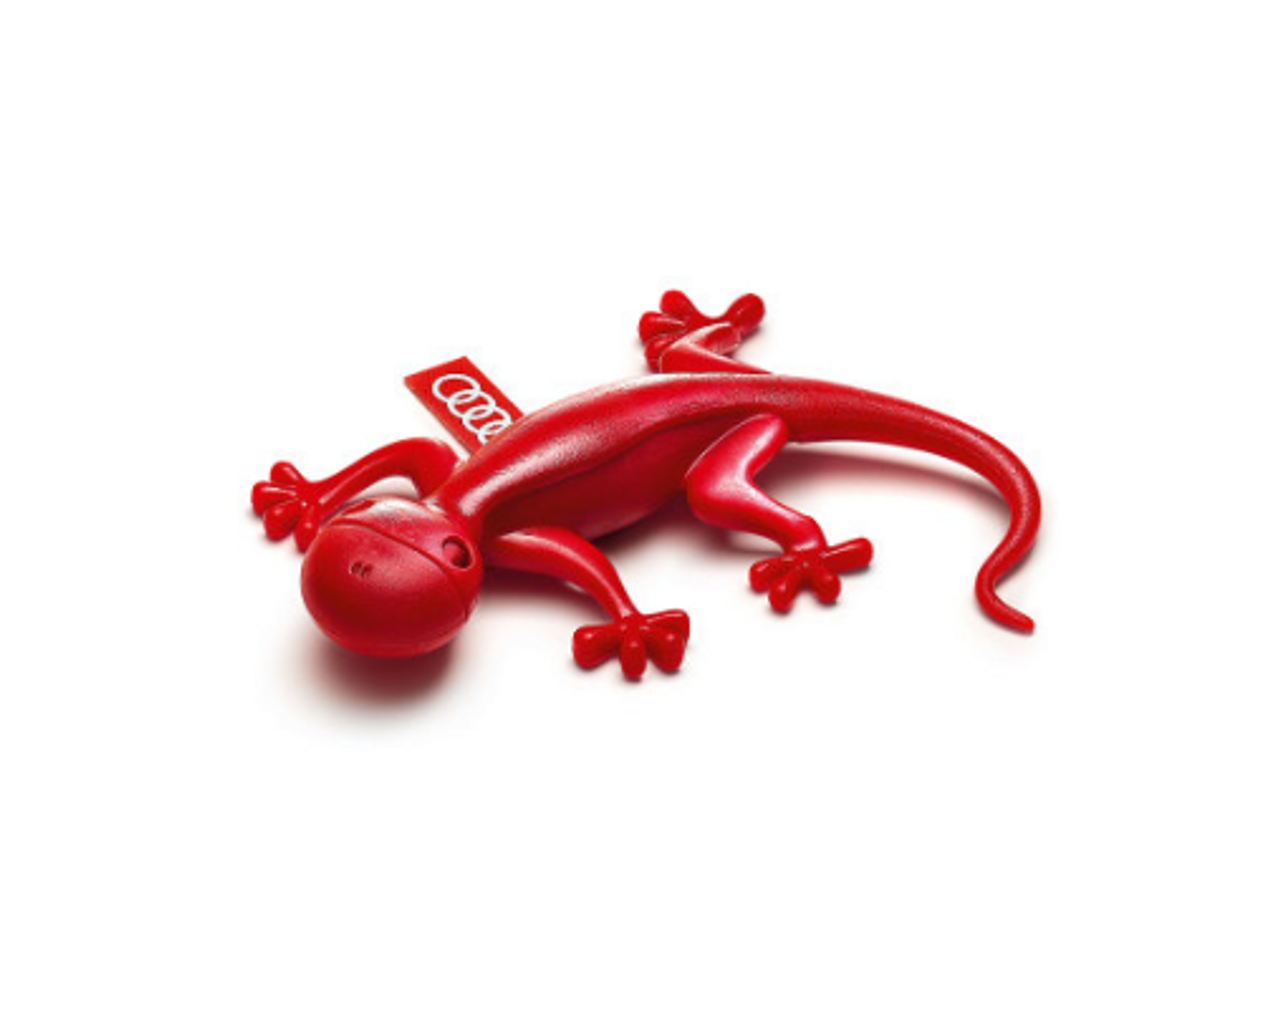 Genuine AUDI Gecko Air Freshener - Red 000087009B